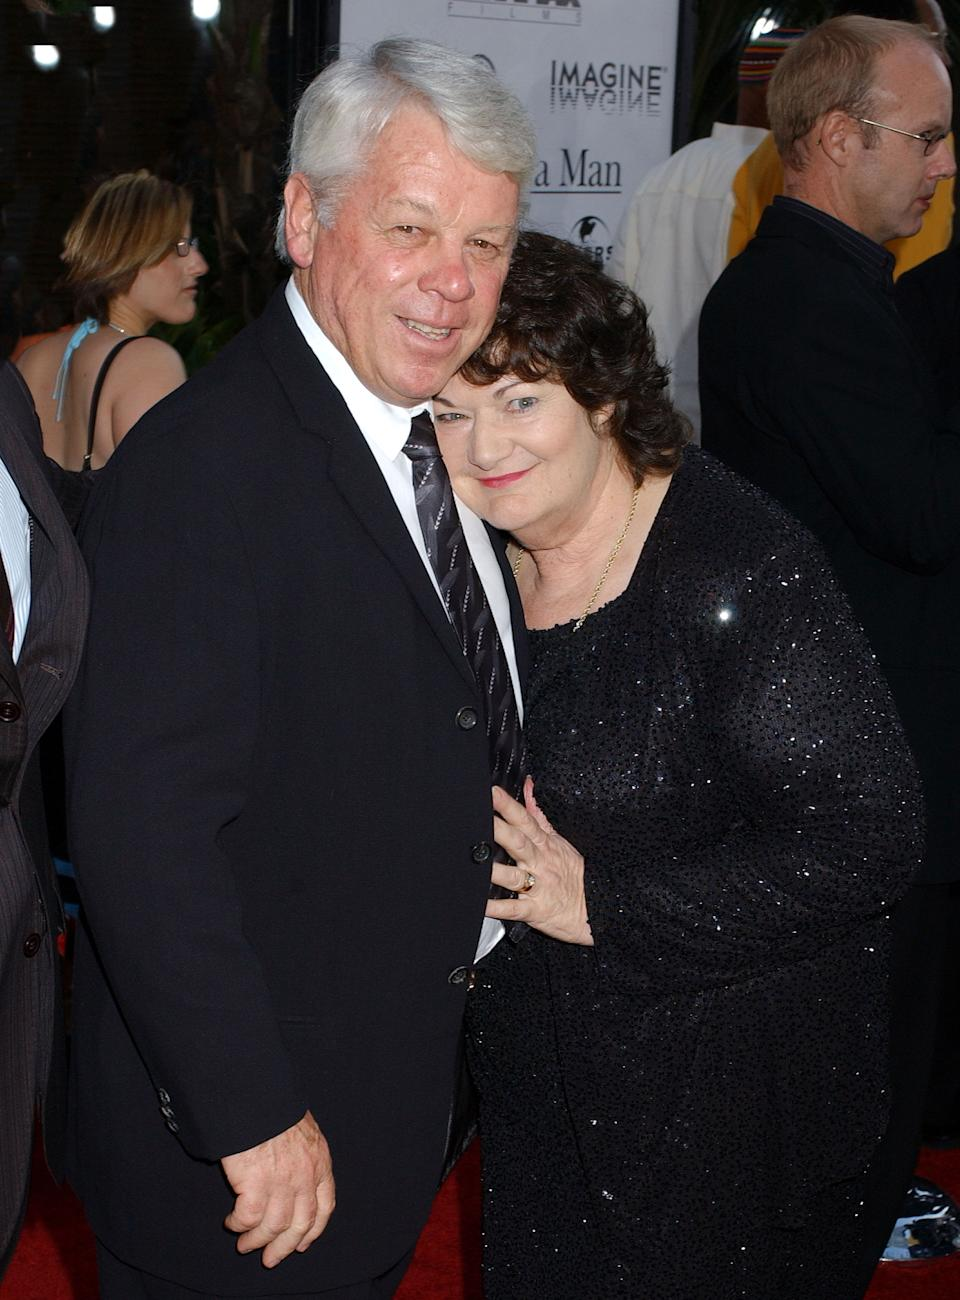 Russell Crowe's dad and mom during